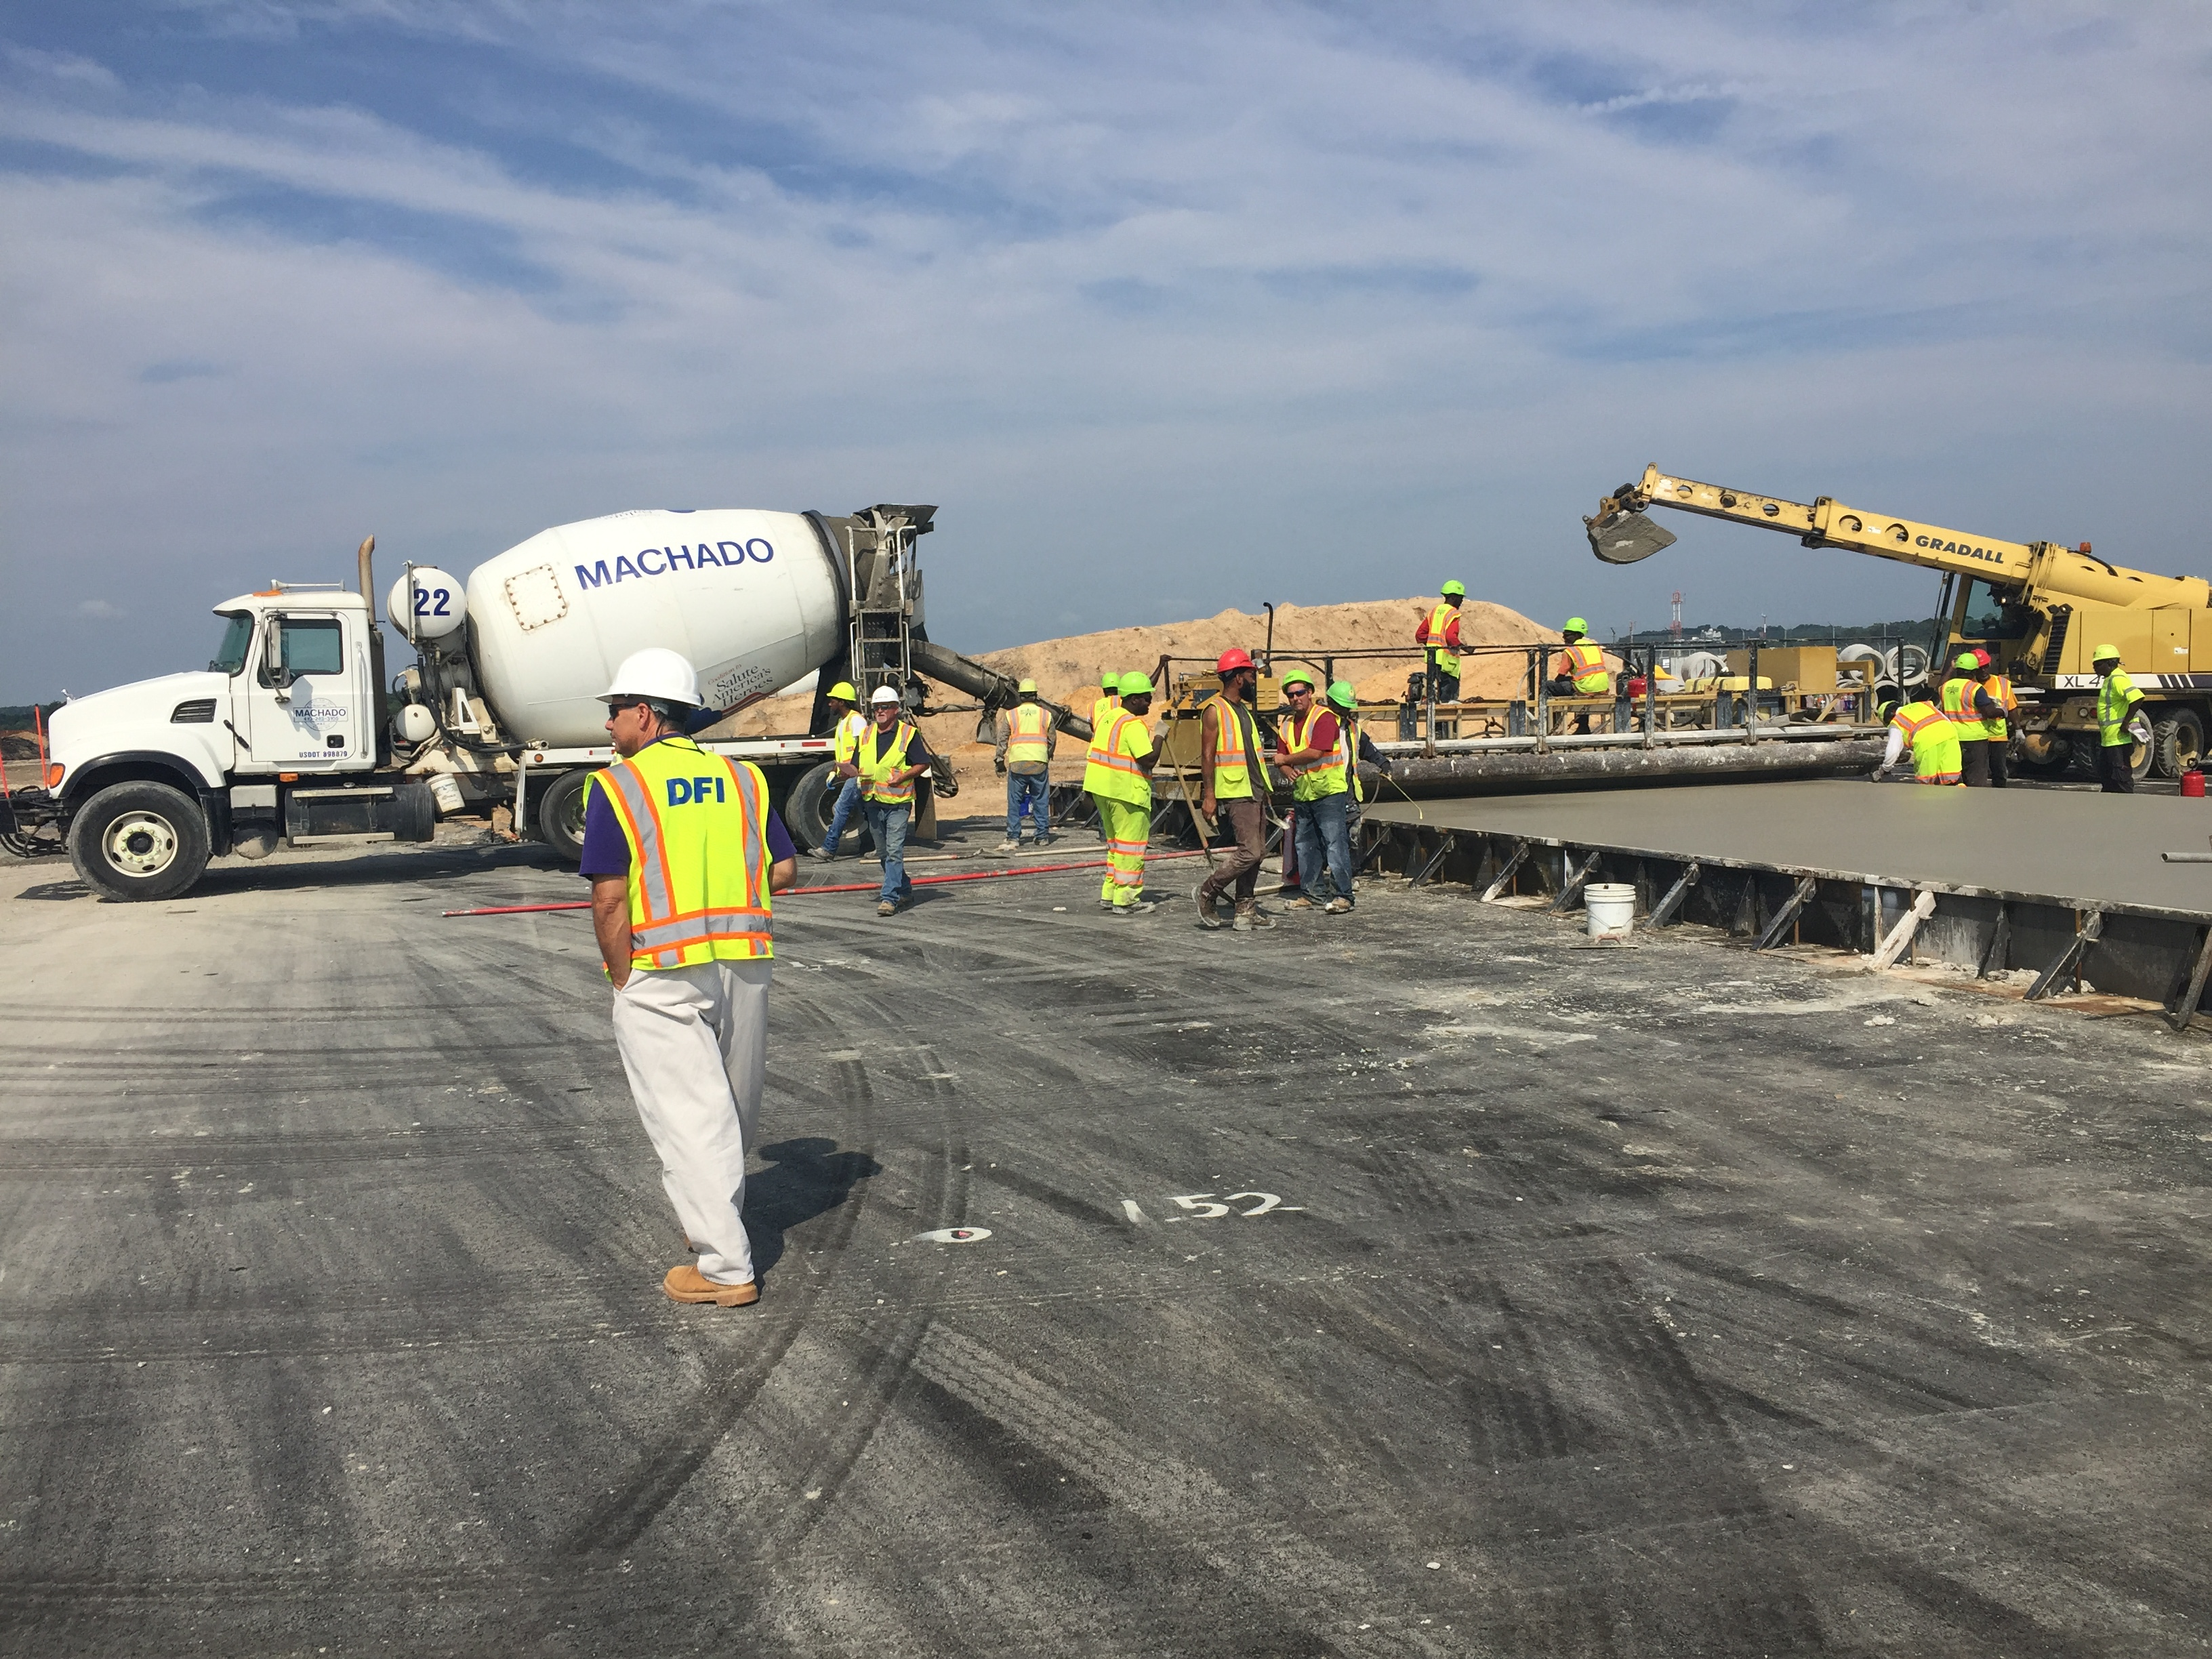 BWI Airport Cargo Pad, Baltimore, Maryland